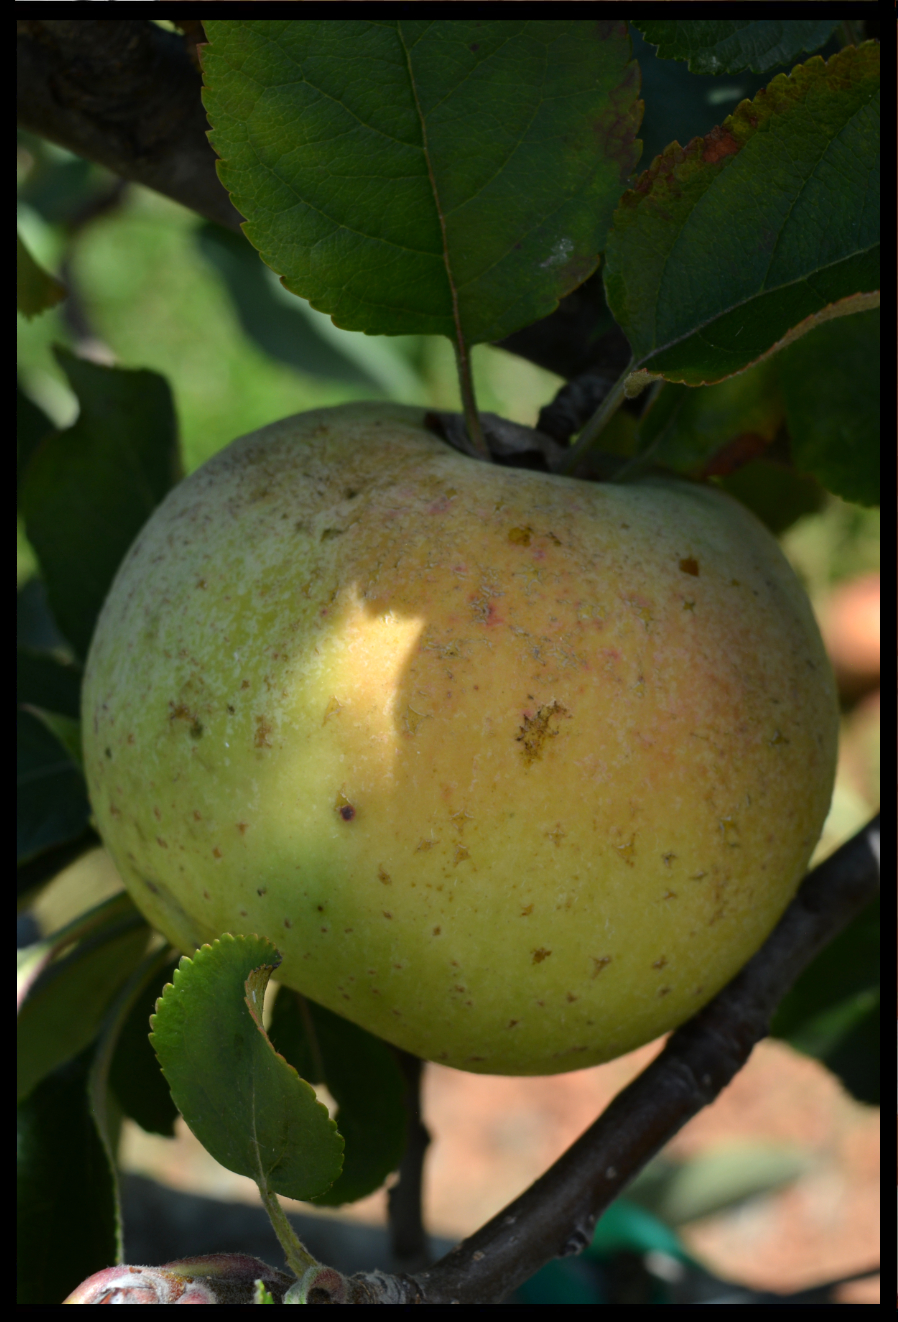 pale yellow apple with faint pink blush